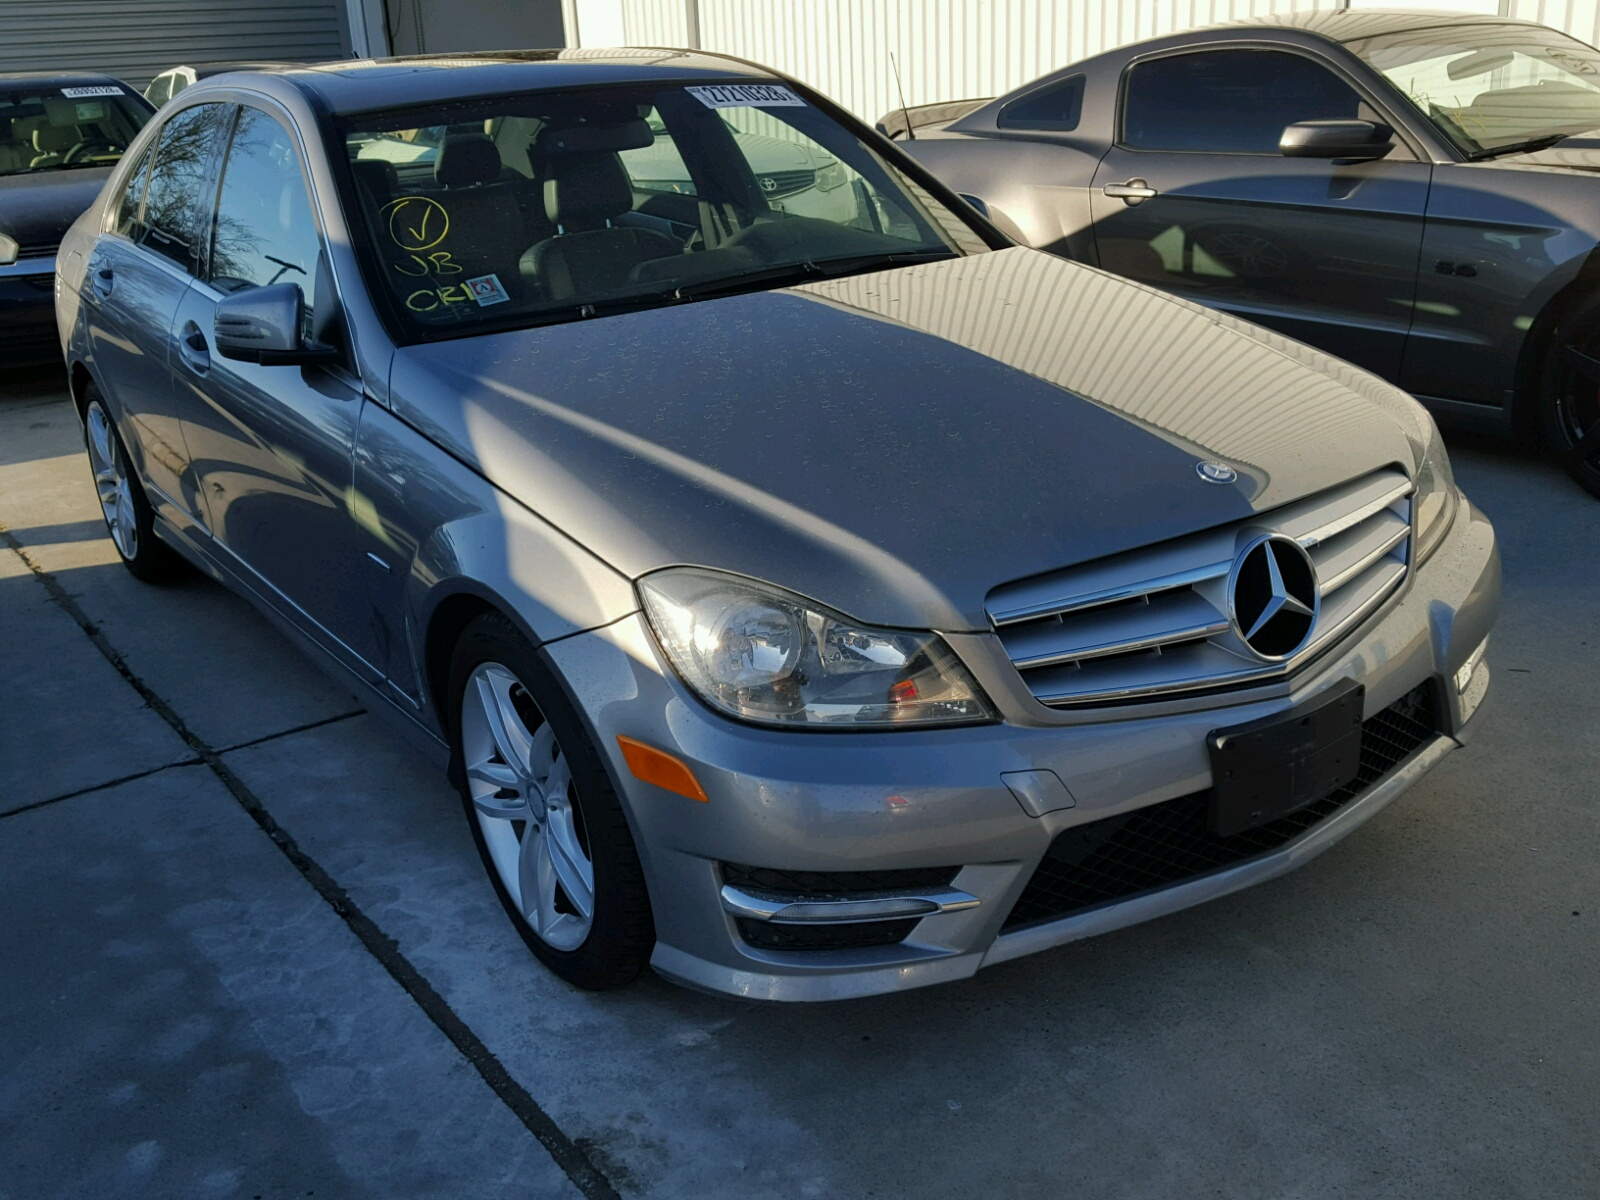 Auto auction ended on vin wddug8cb6ha304034 2017 mercedes for Sun valley motors sacramento